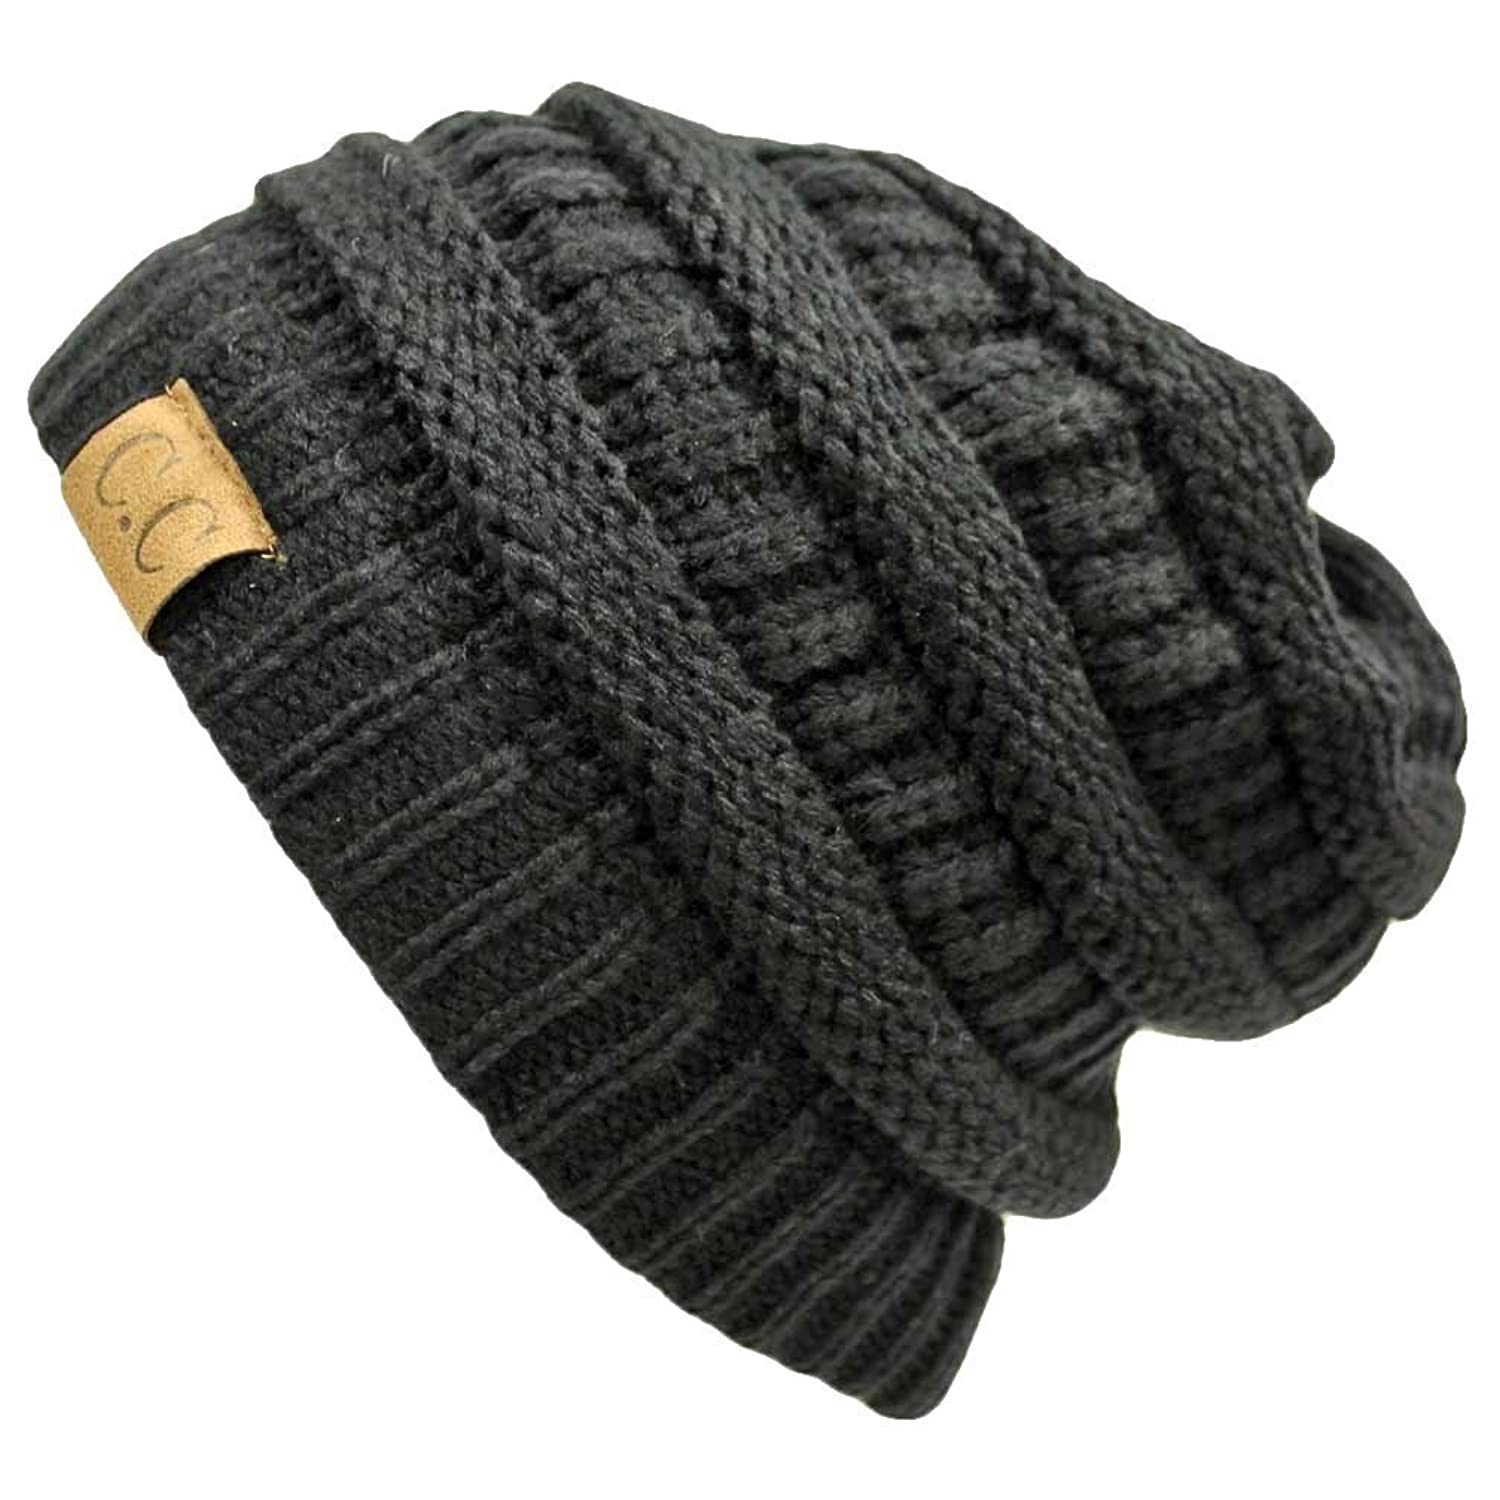 C.C. Beanies Only $8.45 Shippe...